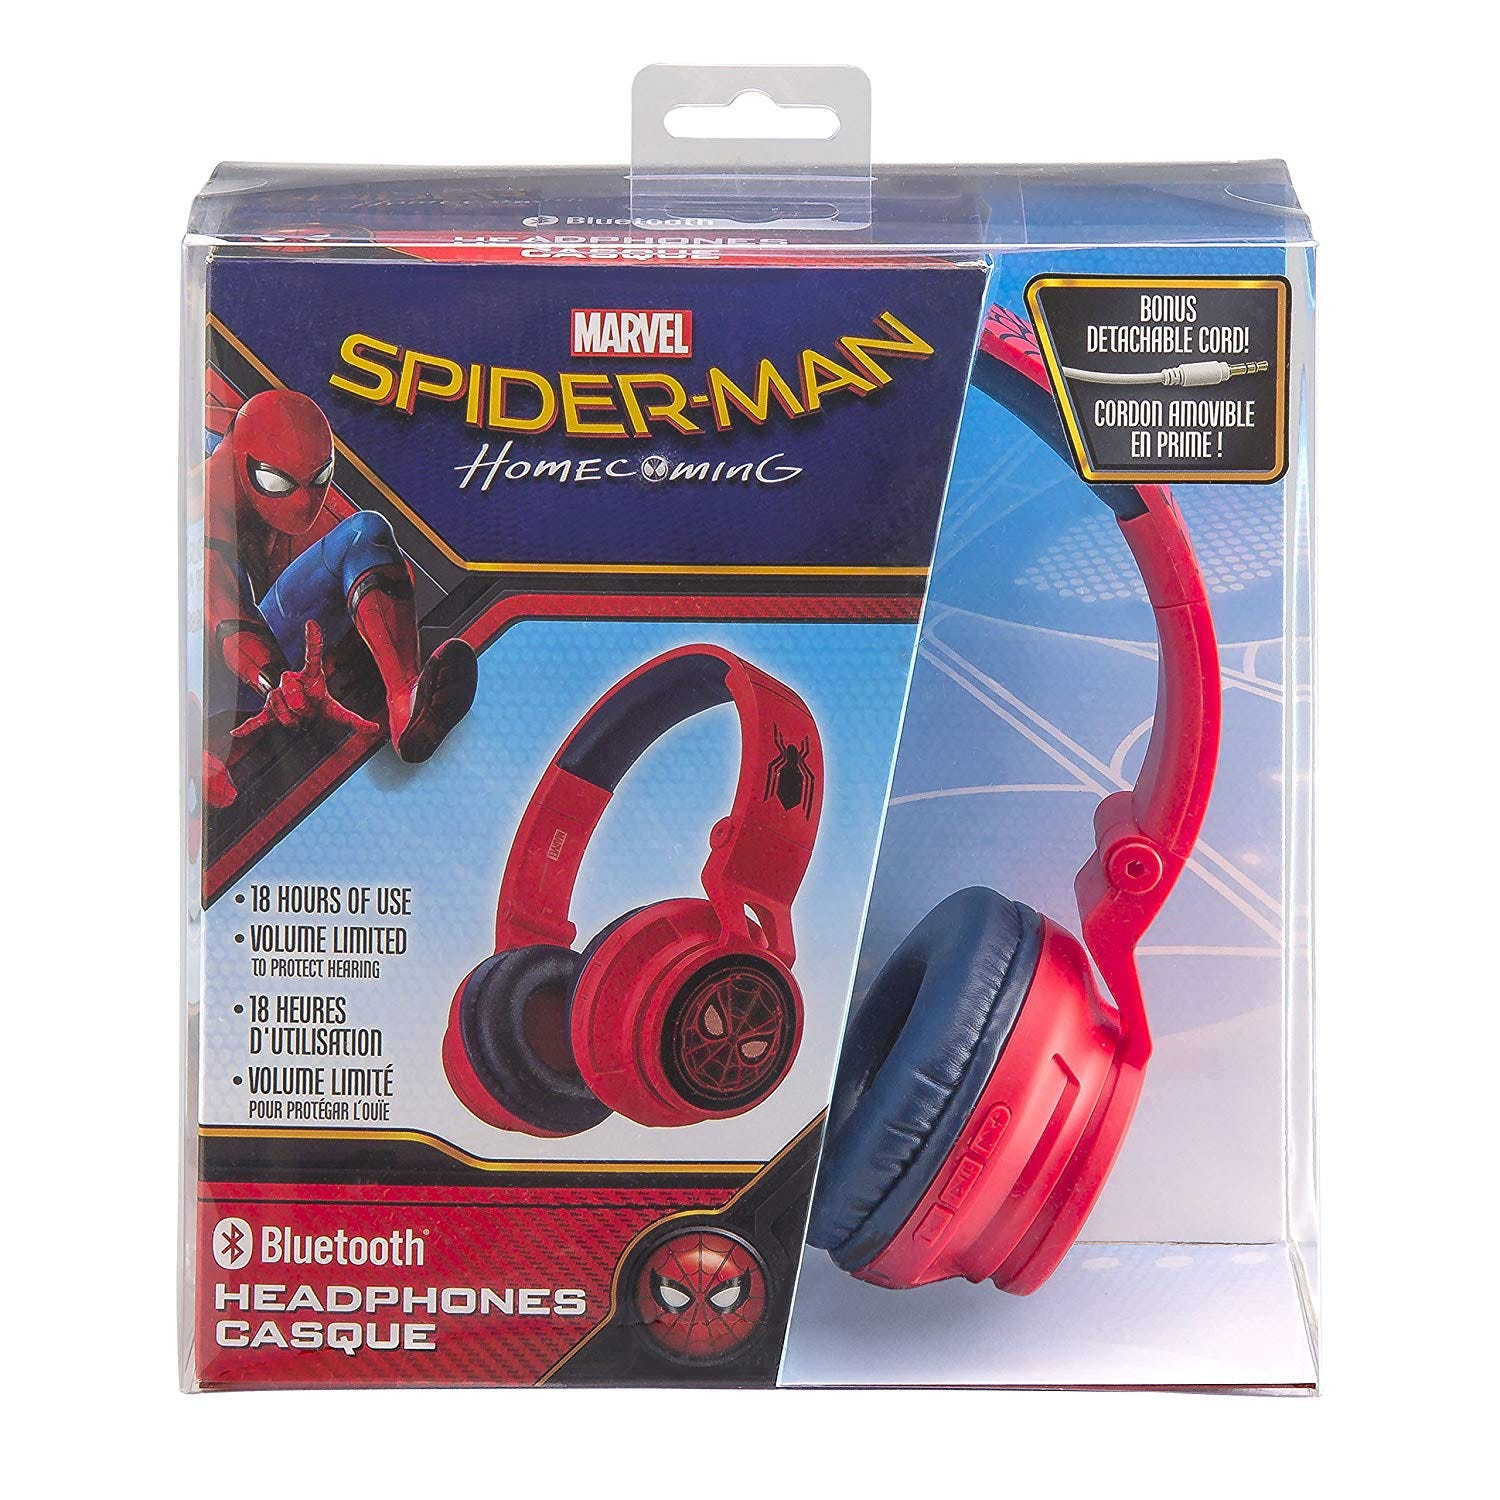 Audífonos  de Spiderman con bluetooth